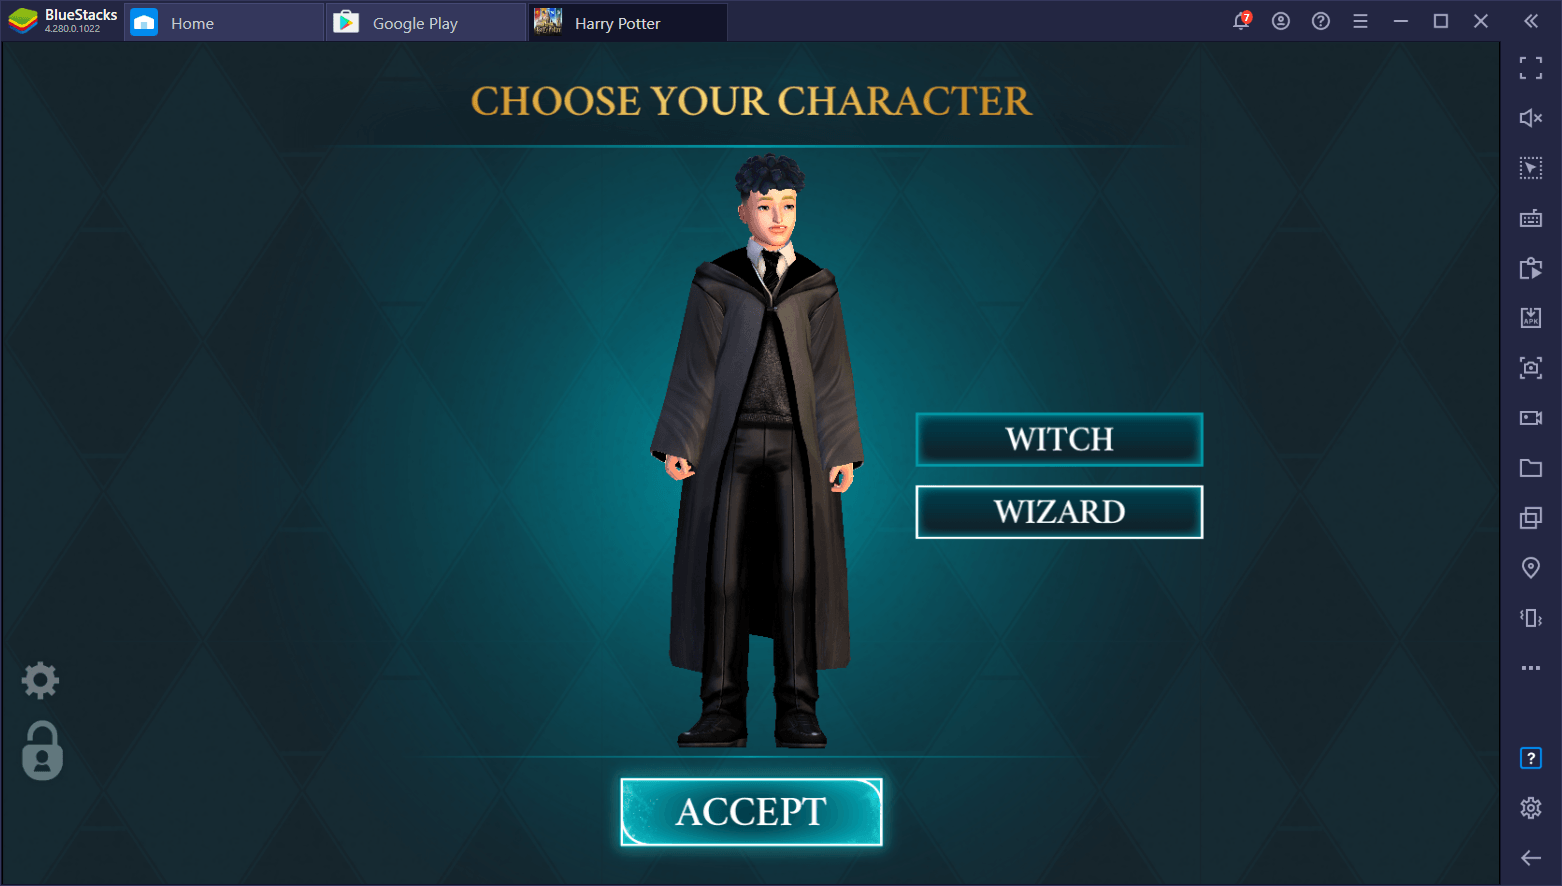 Harry Potter: Hogwarts Mystery on PC – How to Install and Play this Mobile Adventure Game